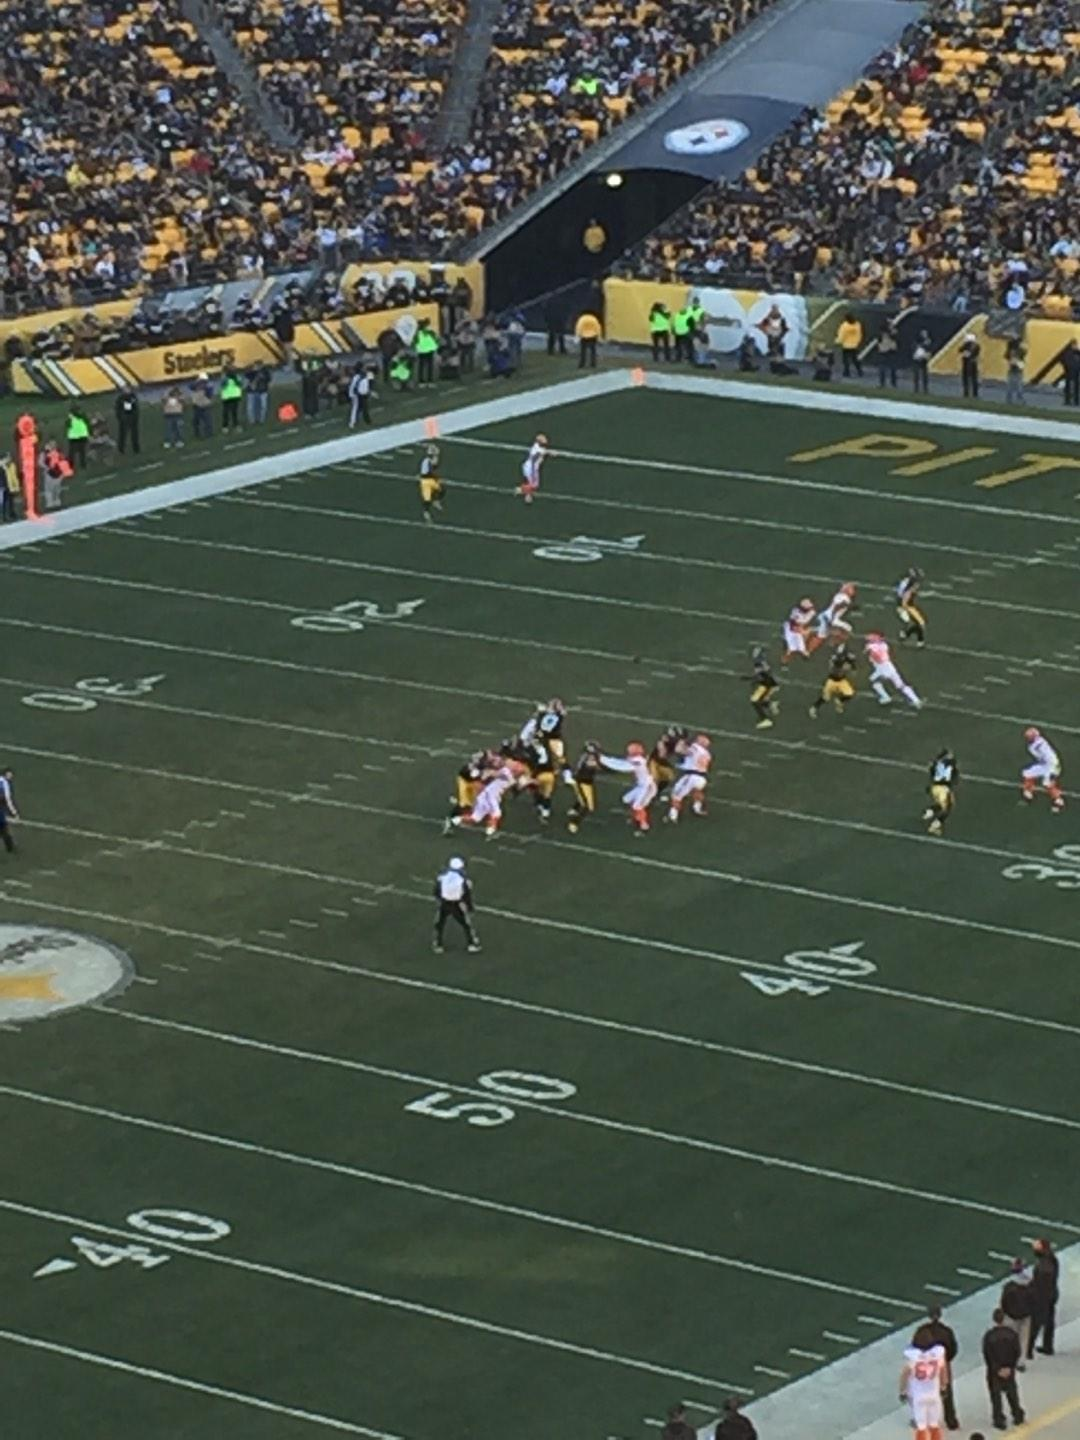 Heinz Field Section 504 Row G Seat 4